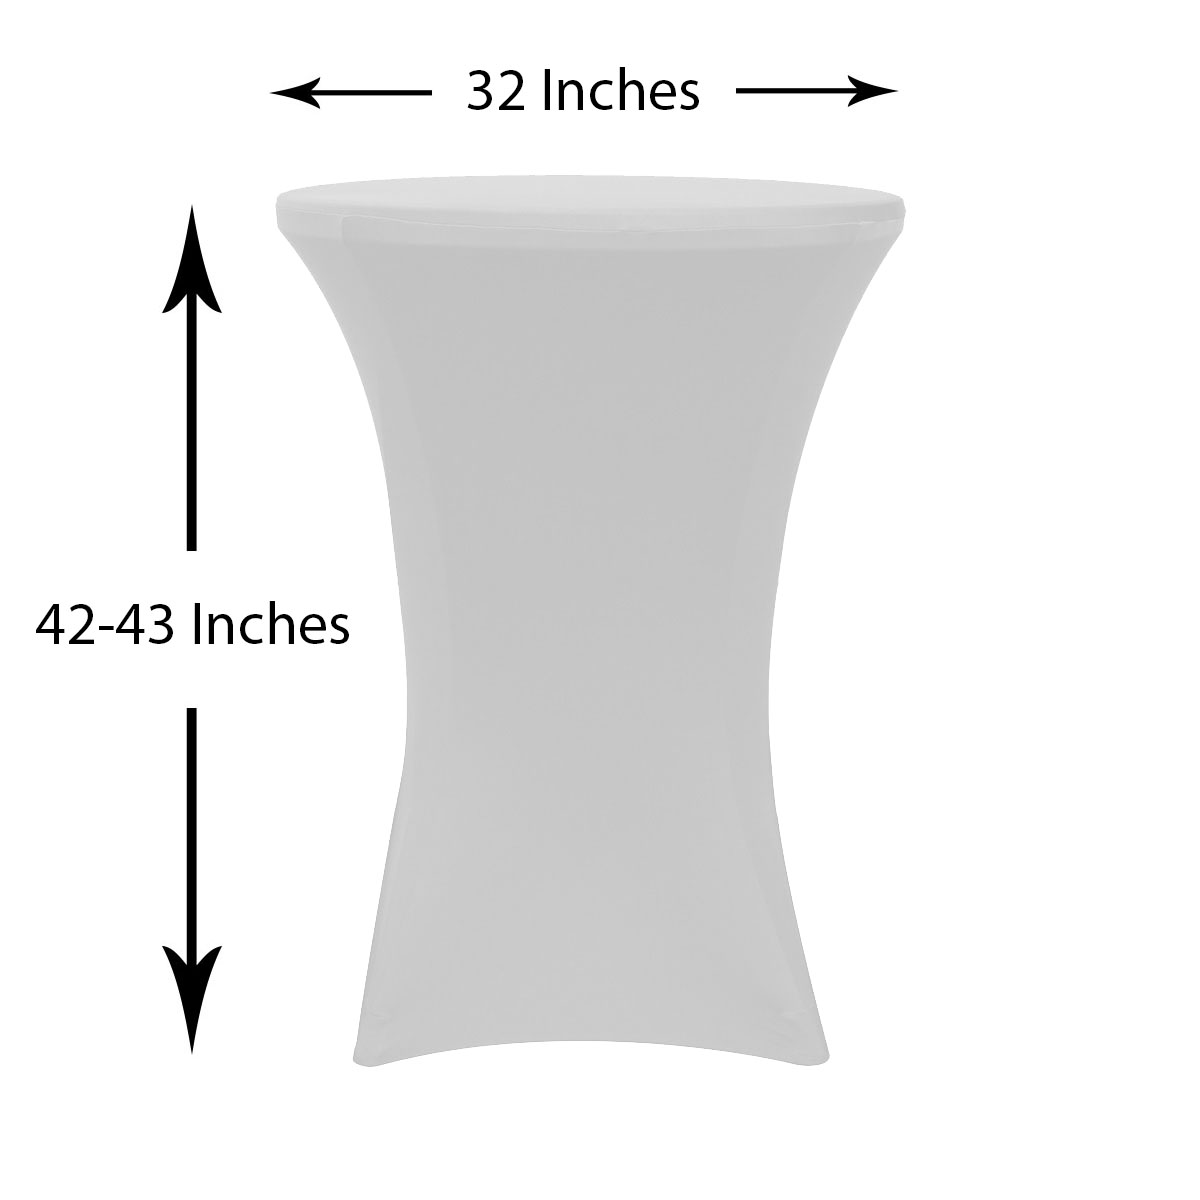 32-inch-highboy-cocktail-spandex-table-covers-white-dimensions.jpg